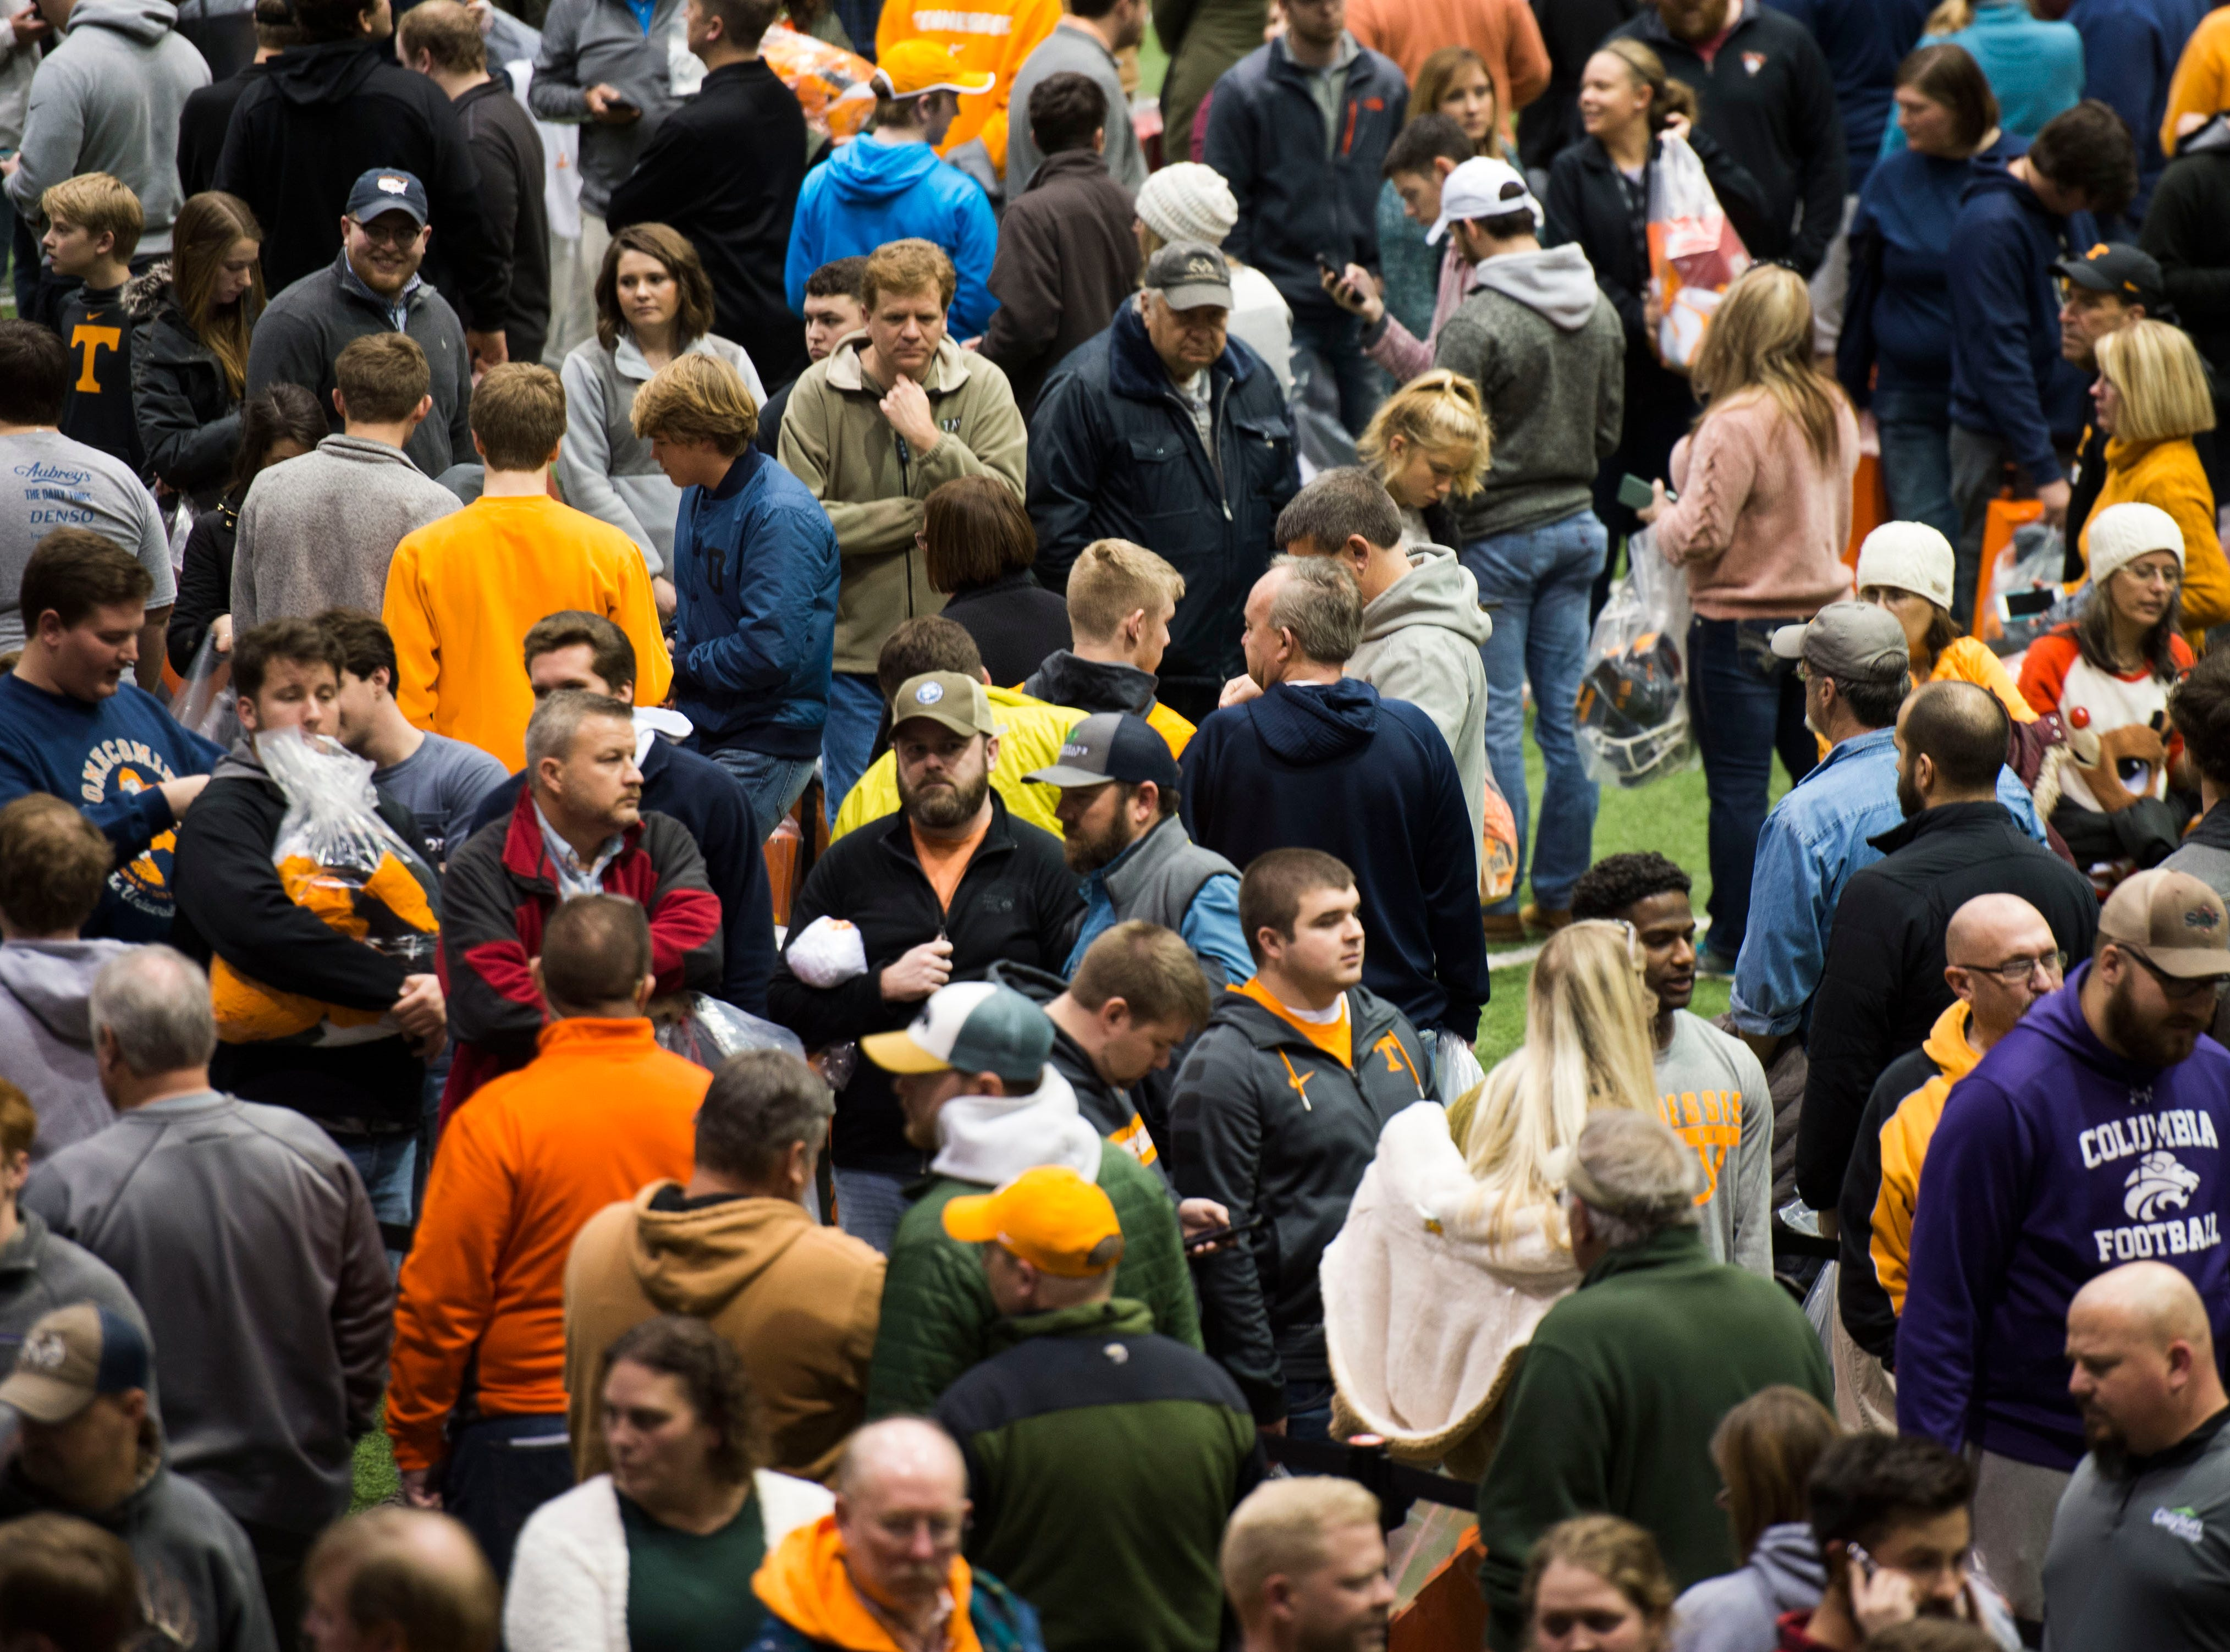 People wait in line to buy athletic apparel on Tennessee football's indoor practice field during University of Tennessee Athletic Department's inventory sale Wednesday, Dec. 12, 2018. Helmets and jerseys were sold along side the discount gear for hundreds of dollars.